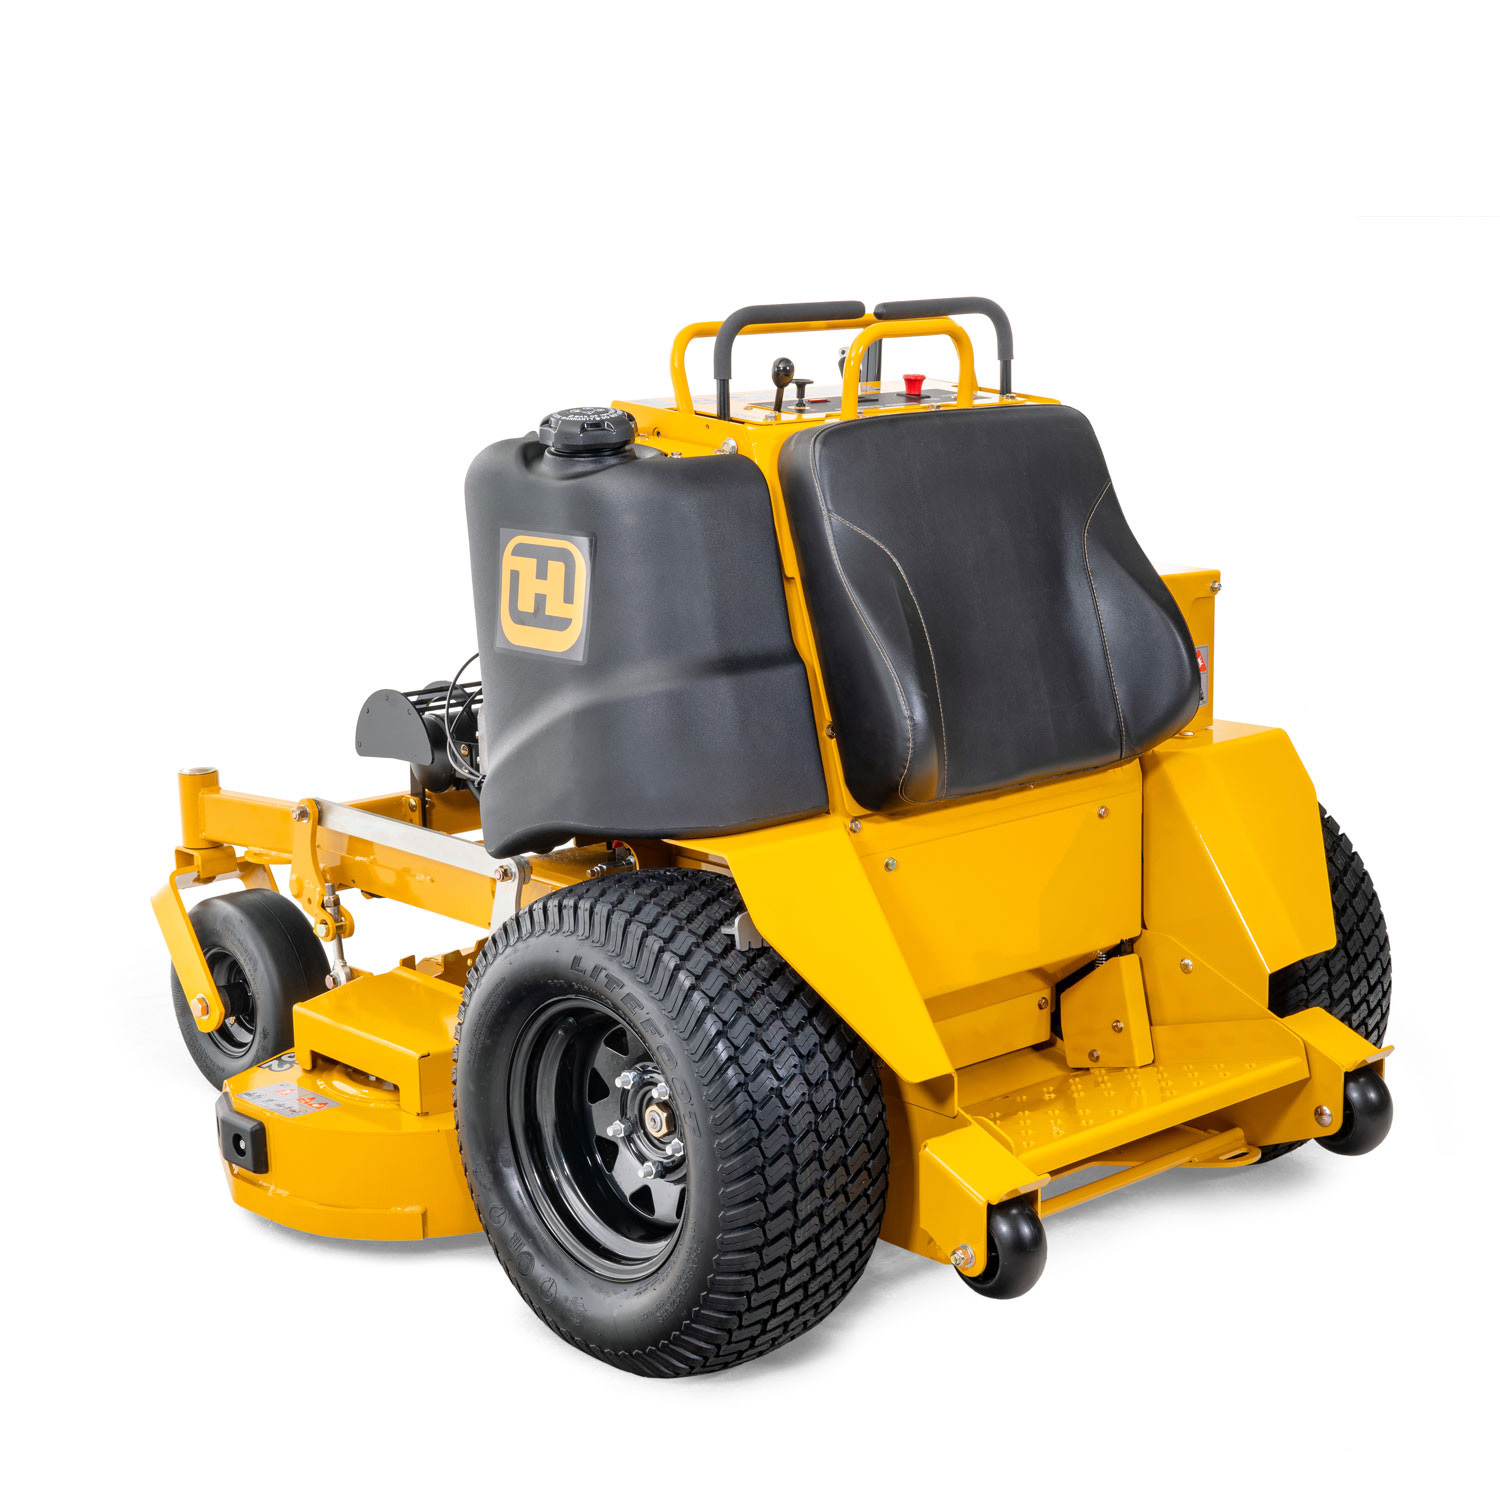 Image of the rear three quarters of a yellow stand-on mower showing the trim side of the deck